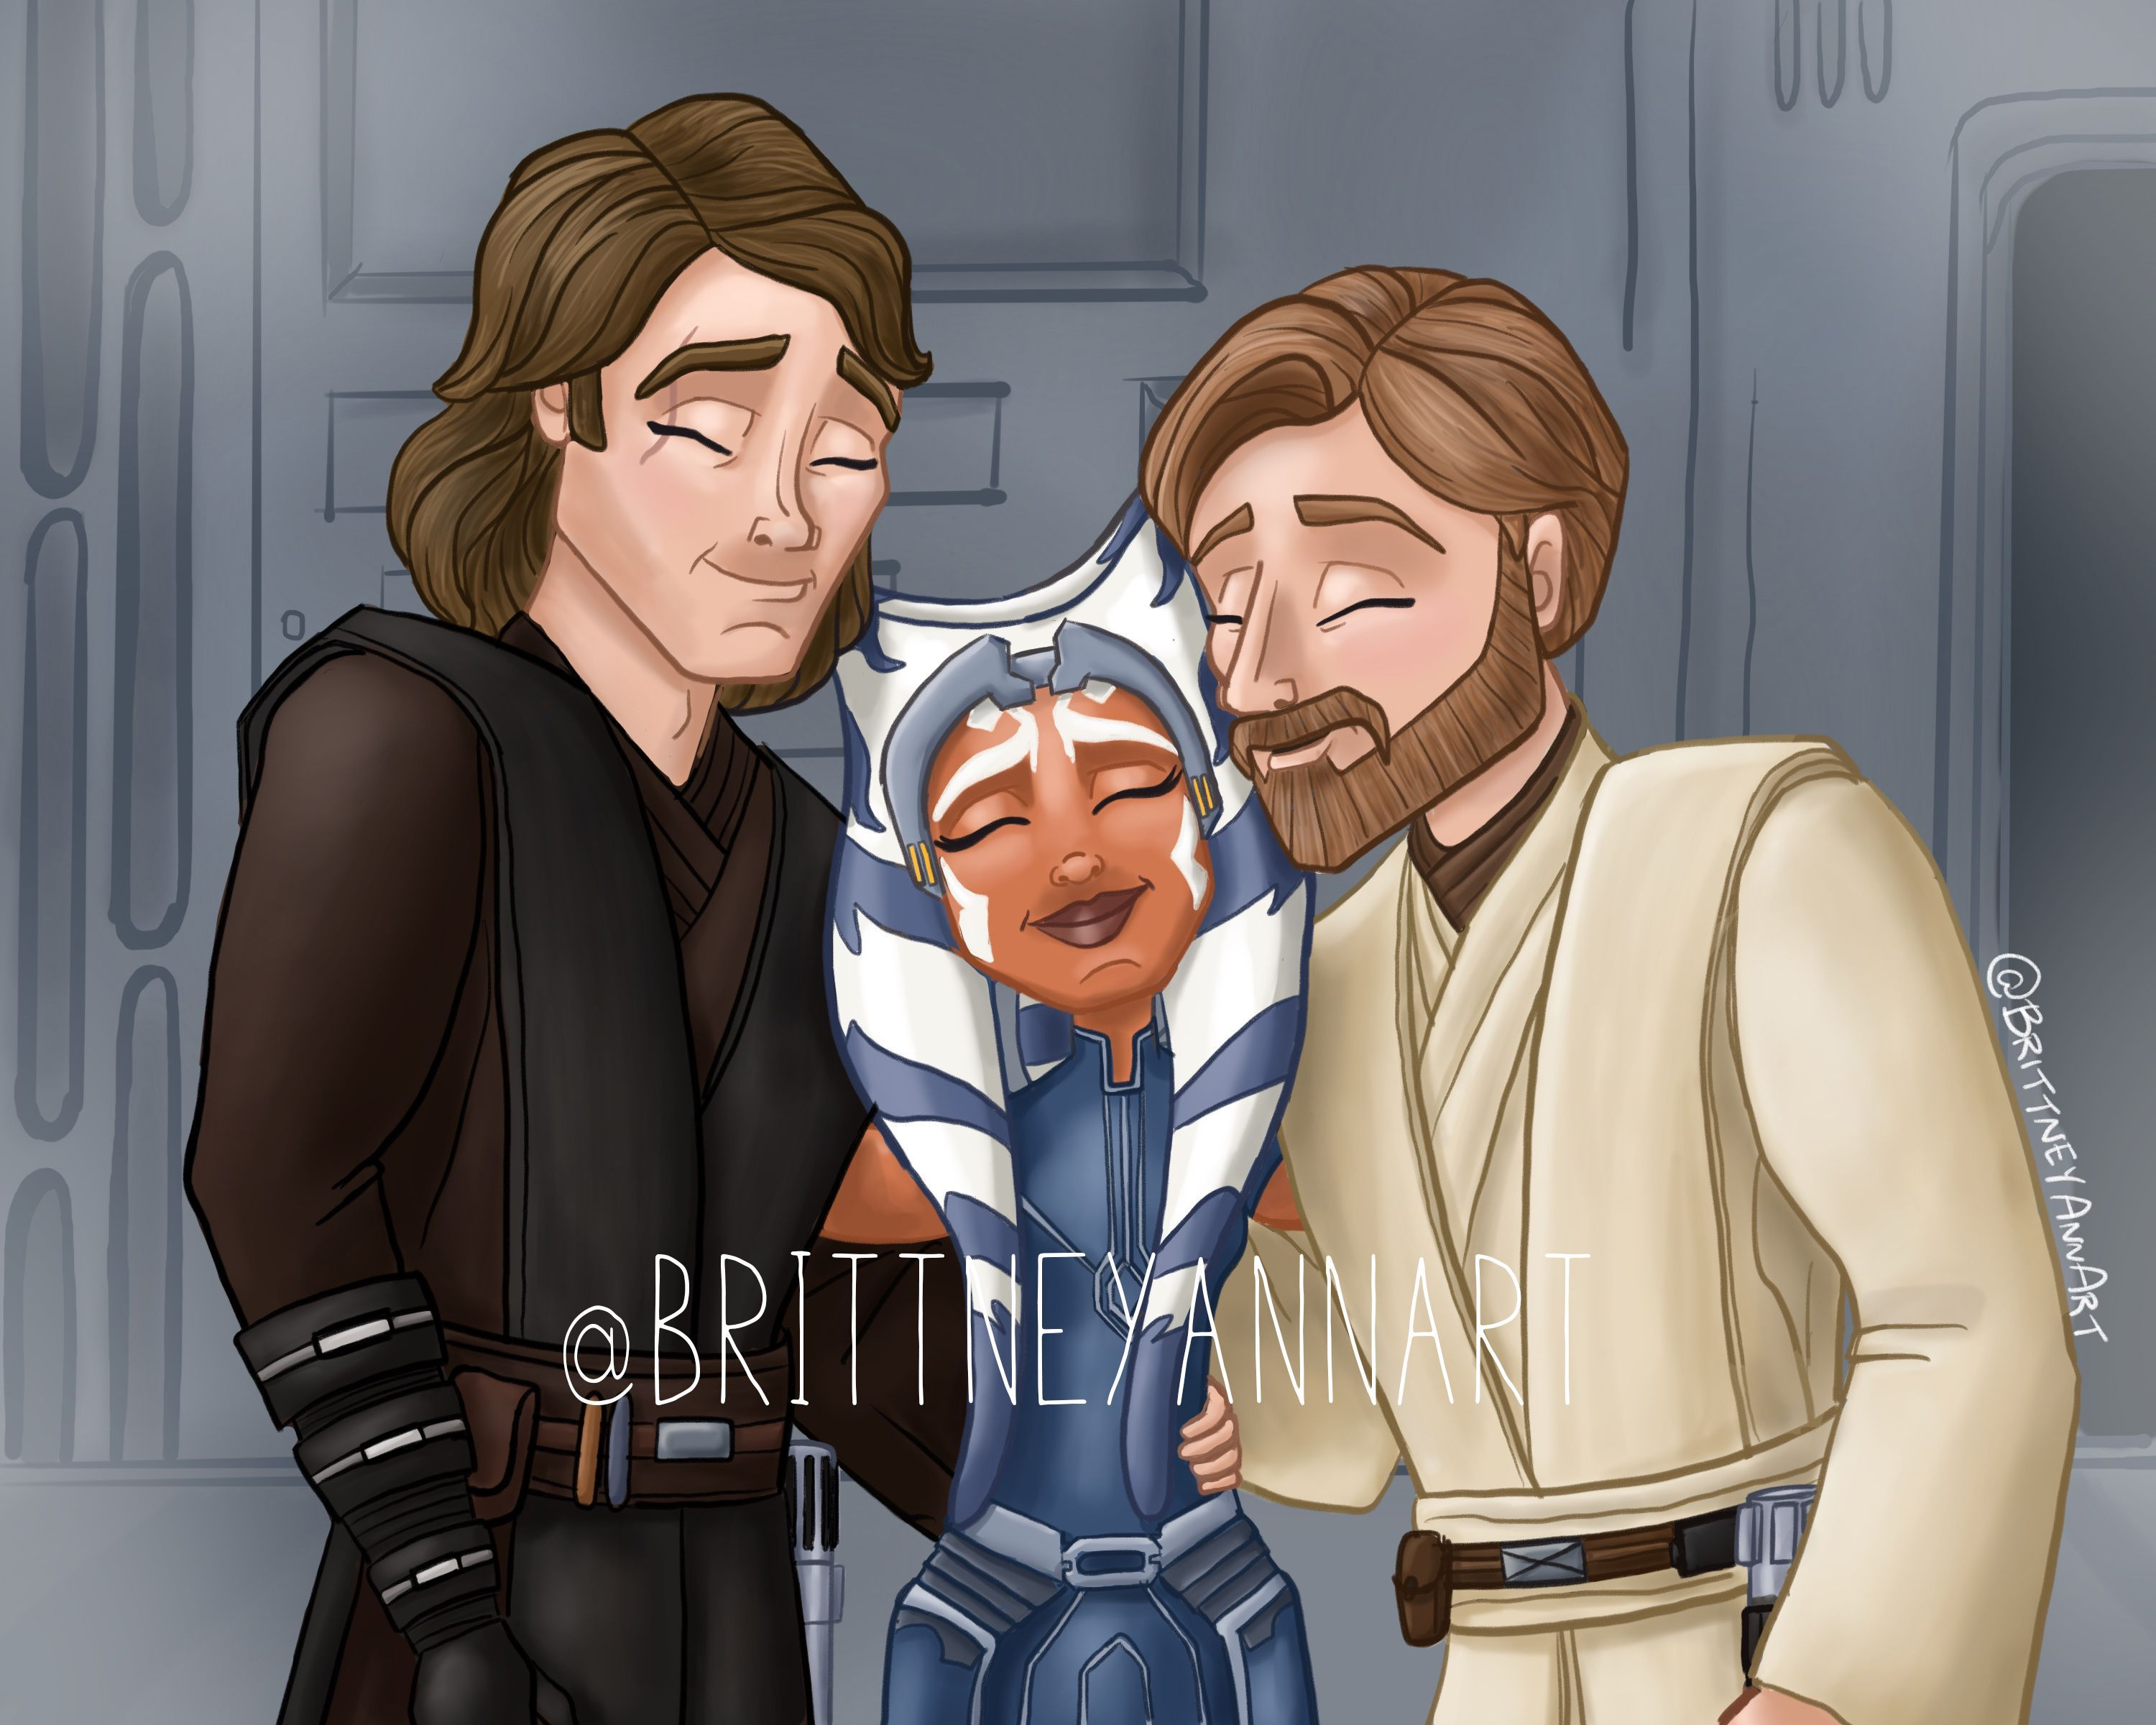 You two certainly havent changed. Anakin Skywalker